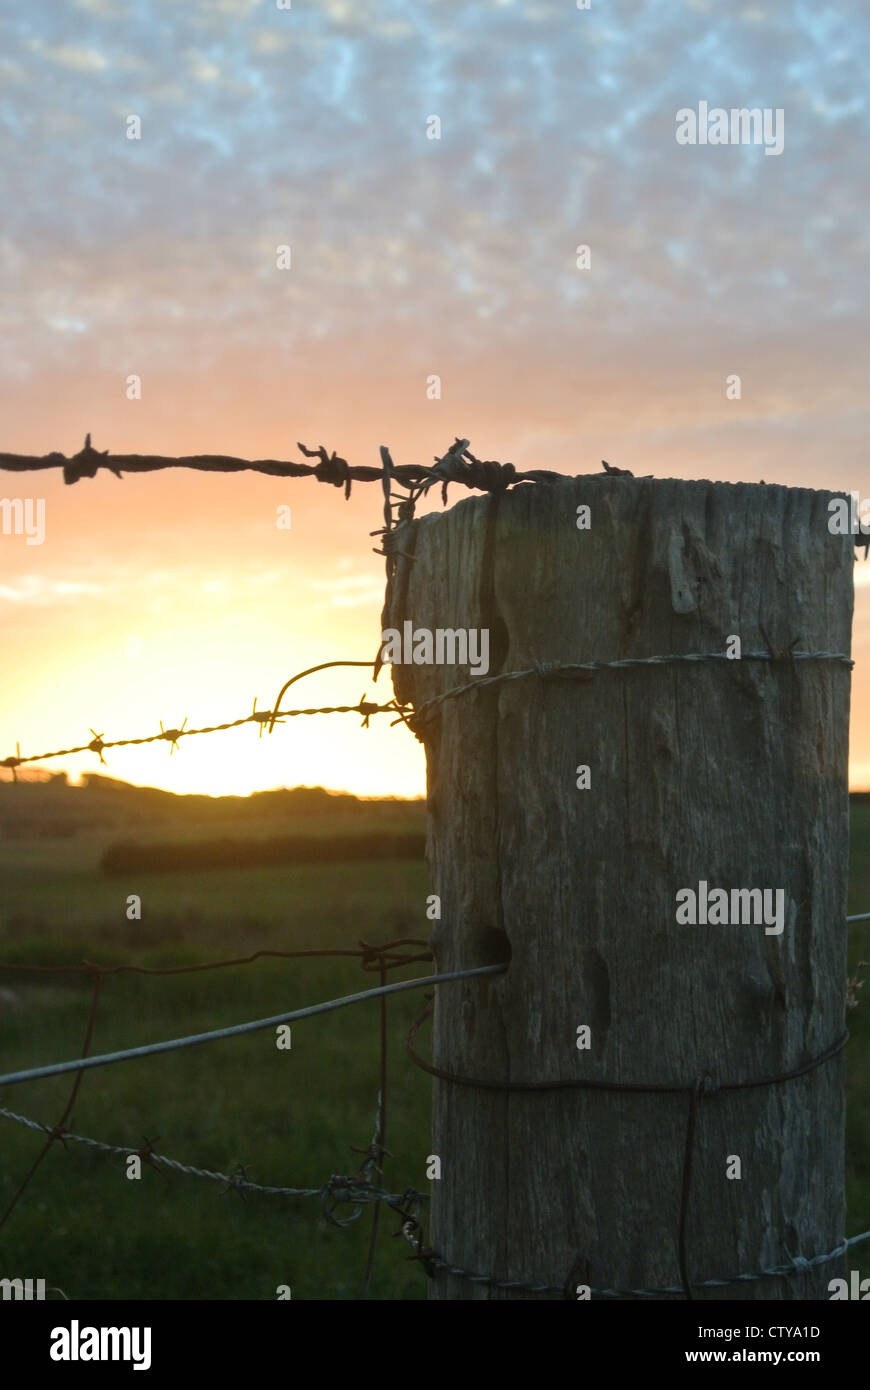 Barbwire fence post sunset - Stock Image